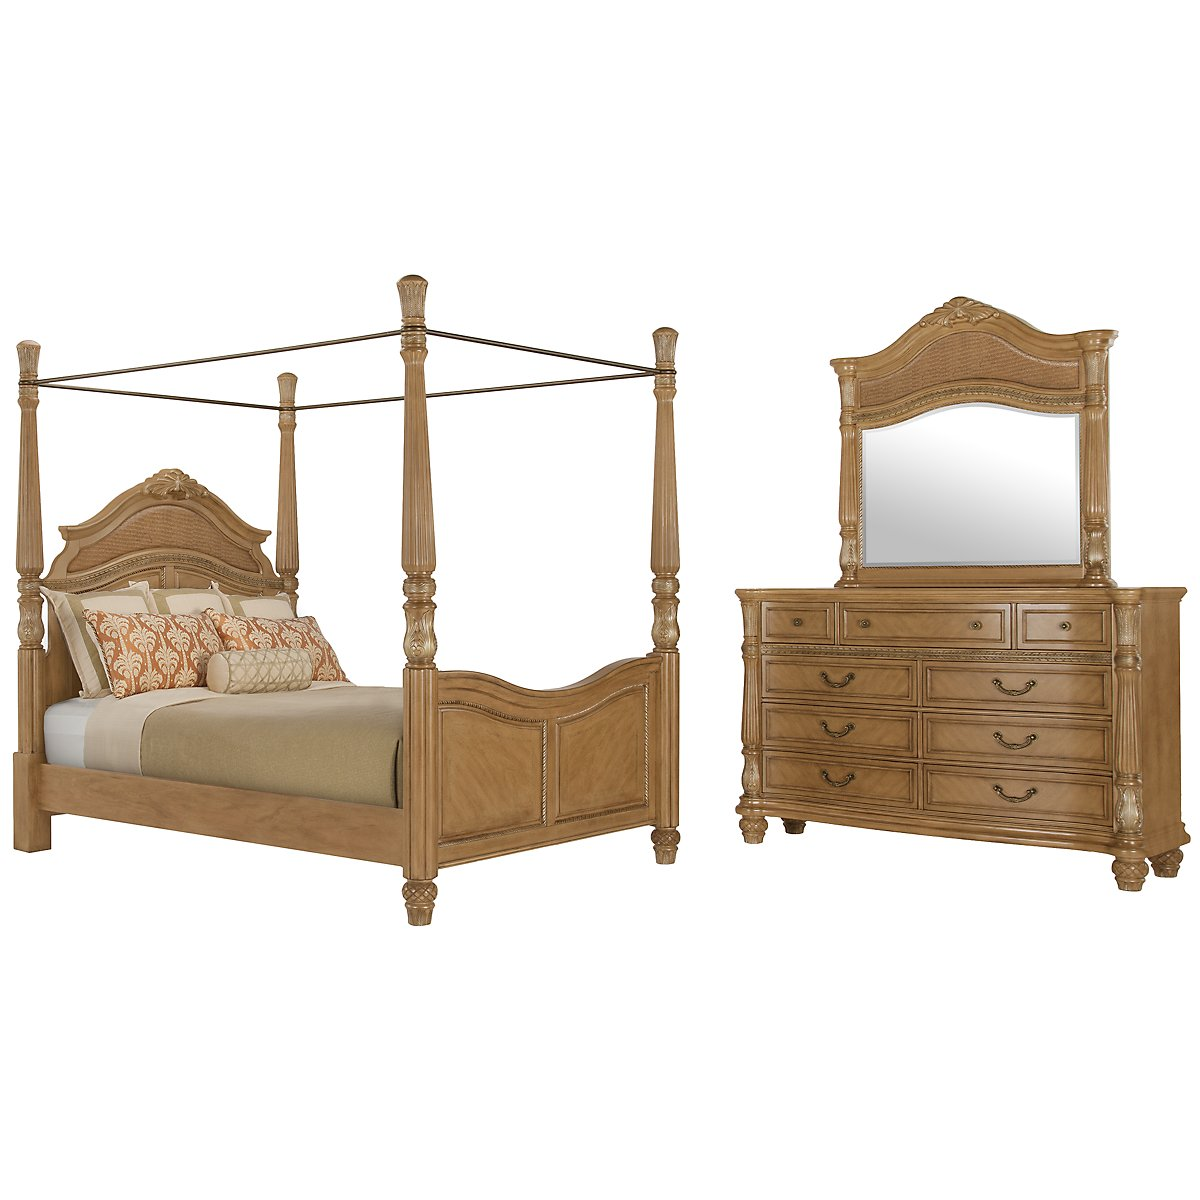 Tradewinds Light Tone Woven Canopy Bedroom